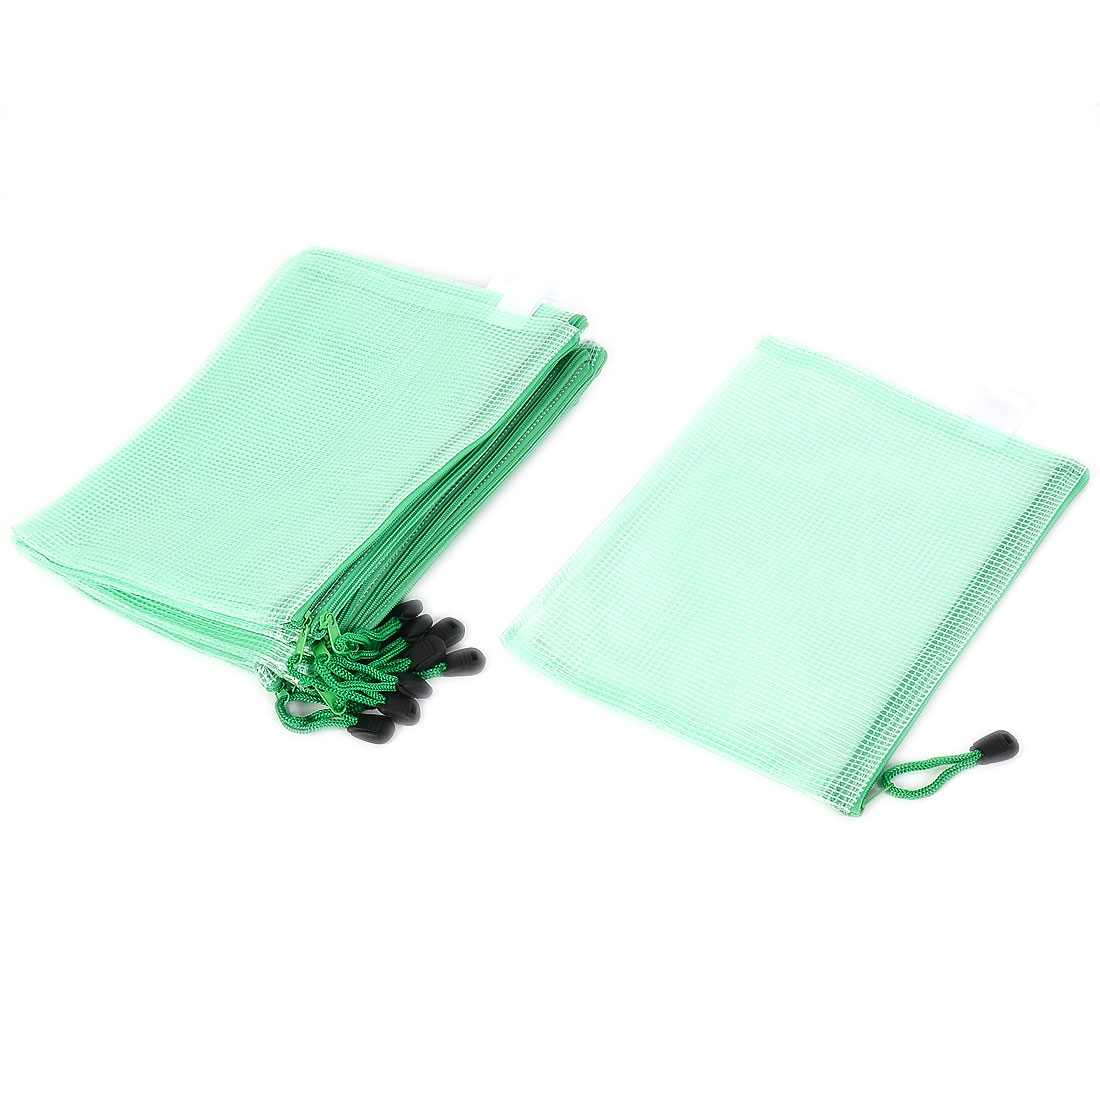 Office A5 Document File Pen Zipper Pocket Bag Holder Folder Green 12pcs